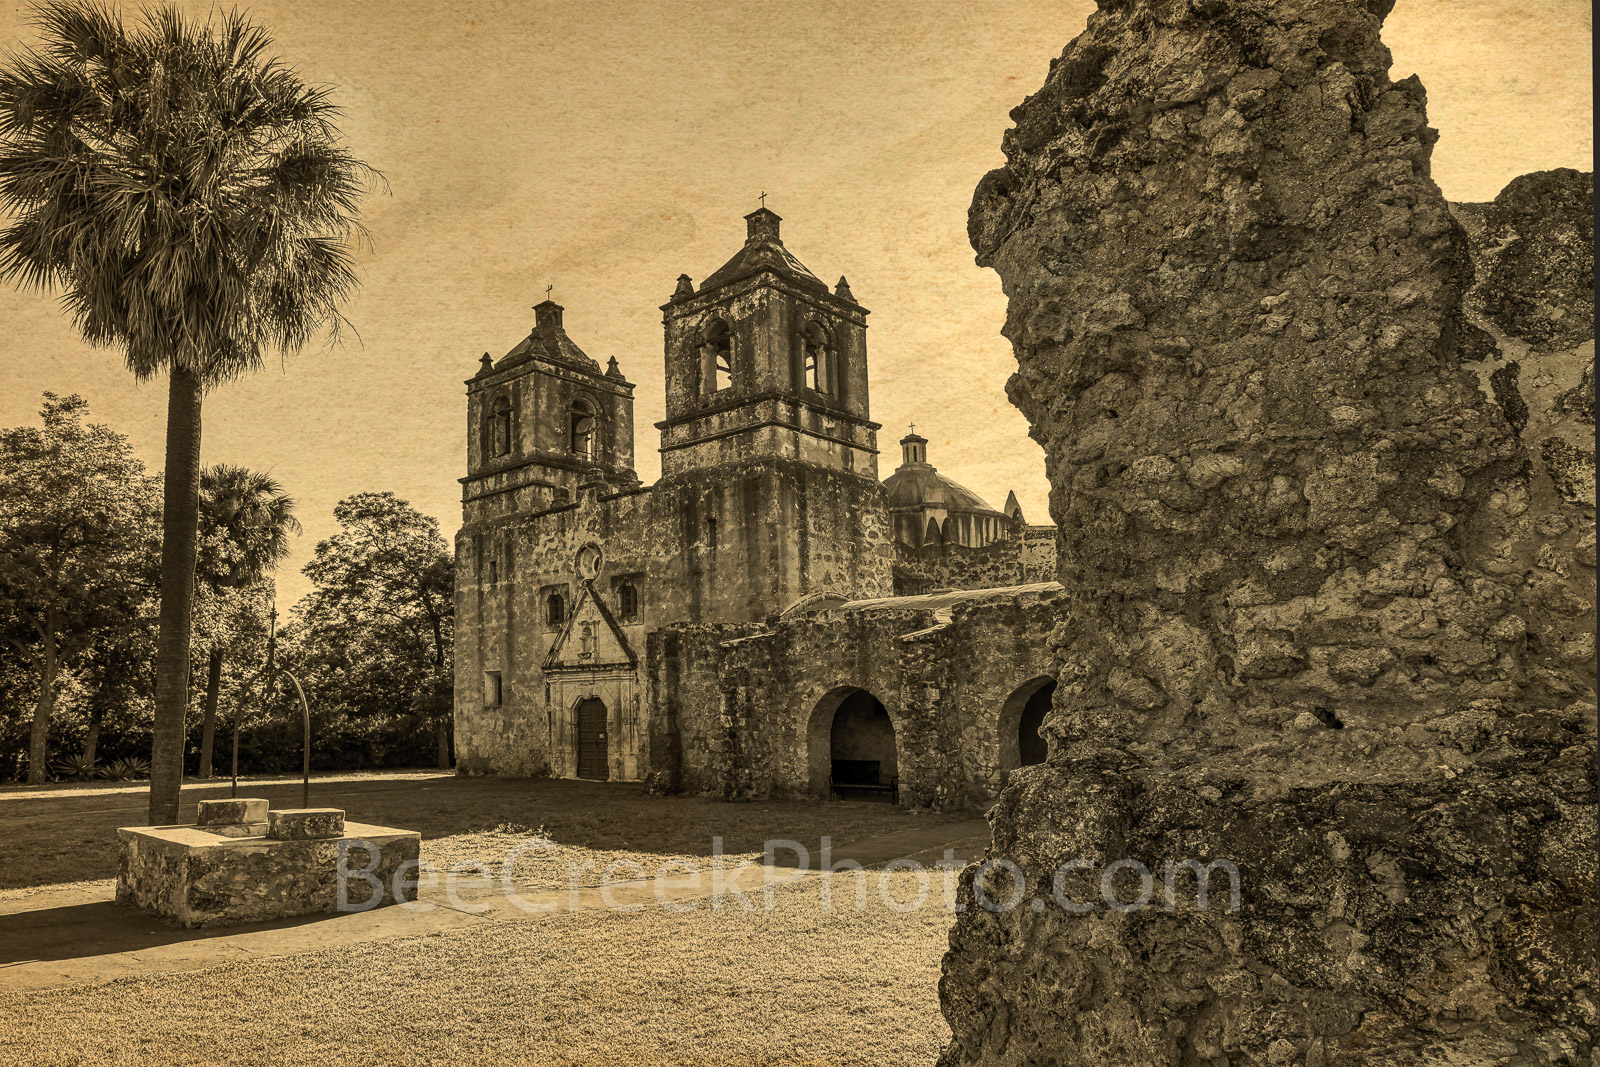 Mission Concepcion Vintage - This is another view of Mission Concepción in a vintage look in downtown San Antonio. The...